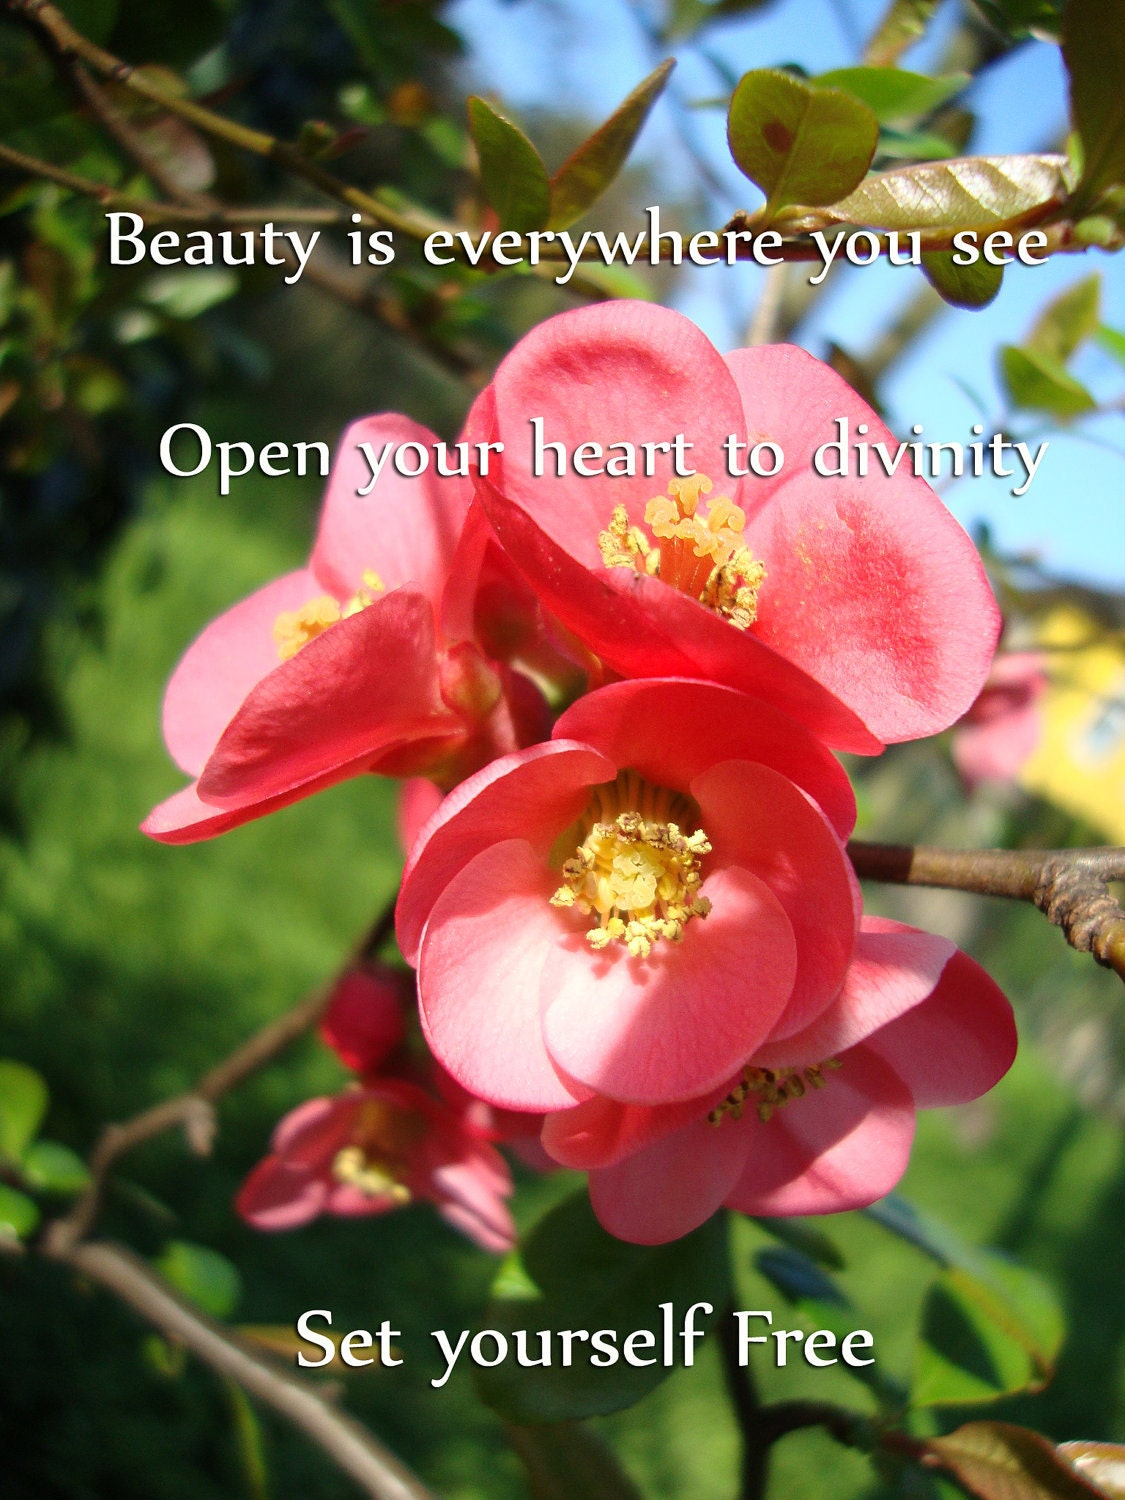 Nature Photo Inspirational Quote -  8x10 Fine Art Photography, Beauty is everywhere you see